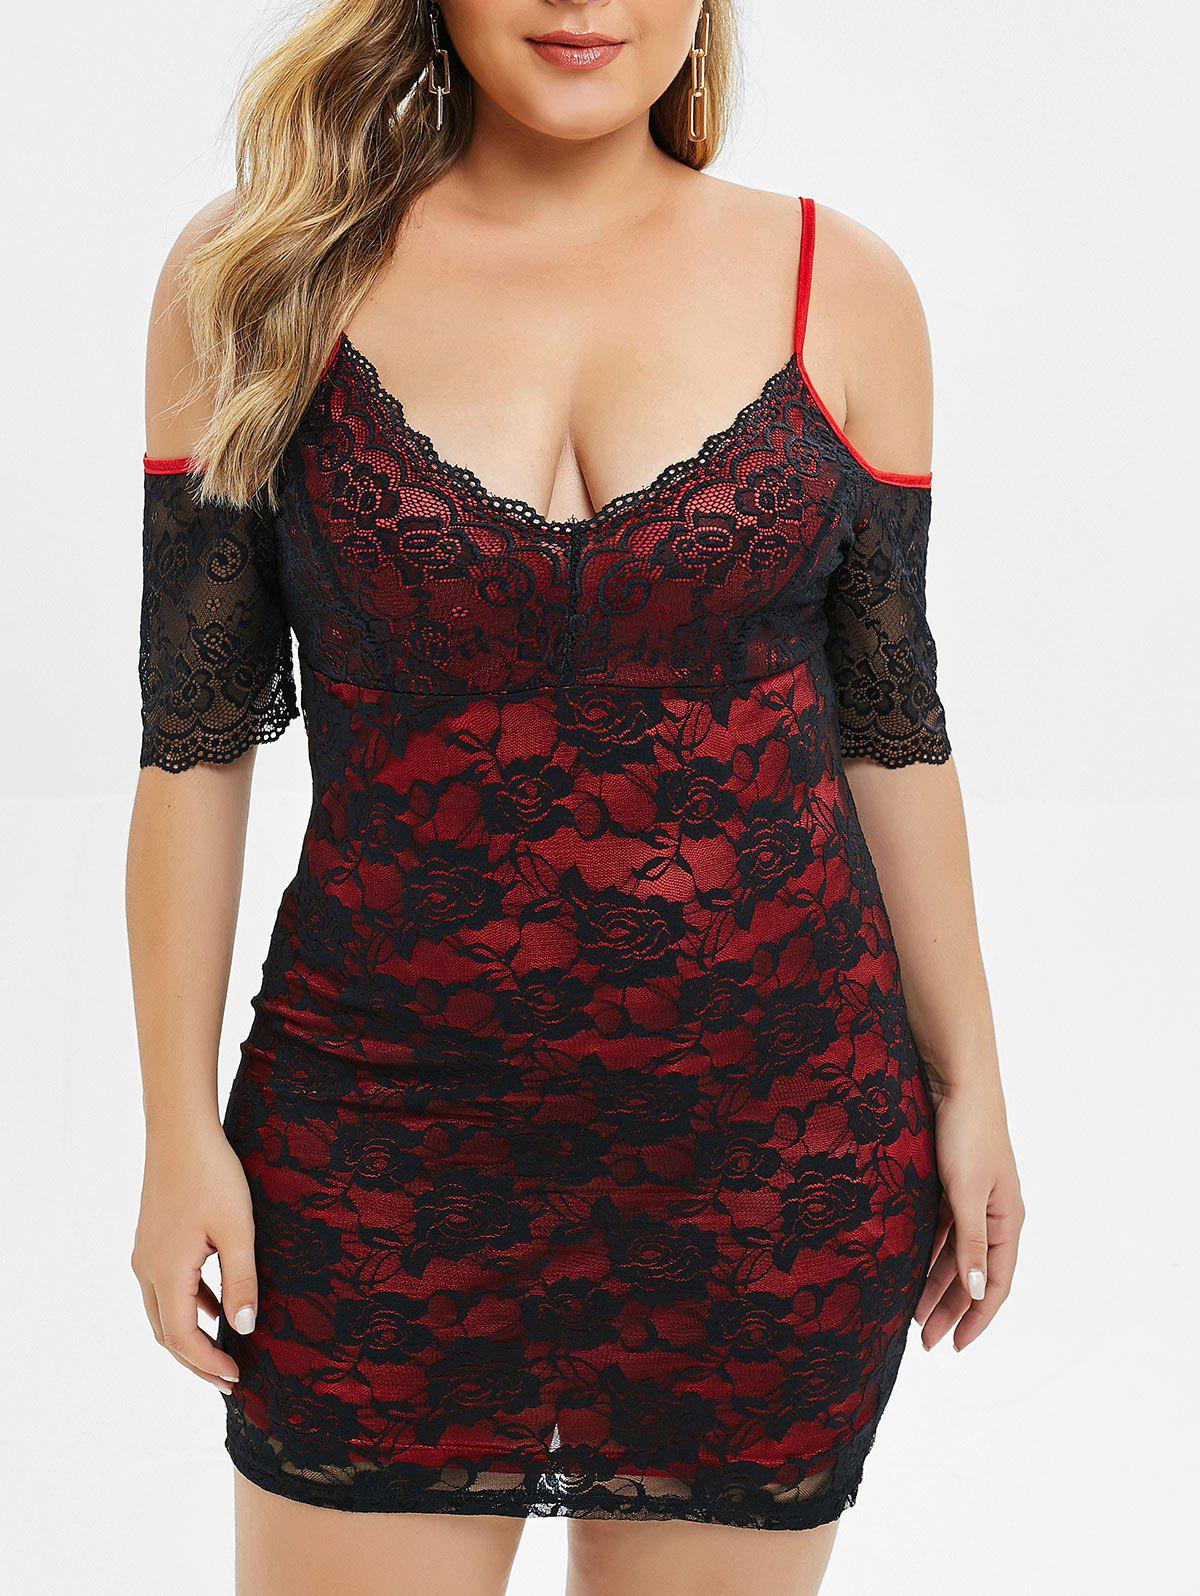 Plus Size Spaghetti Strap Cold Shoulder Lace Dress - RED WINE 2X